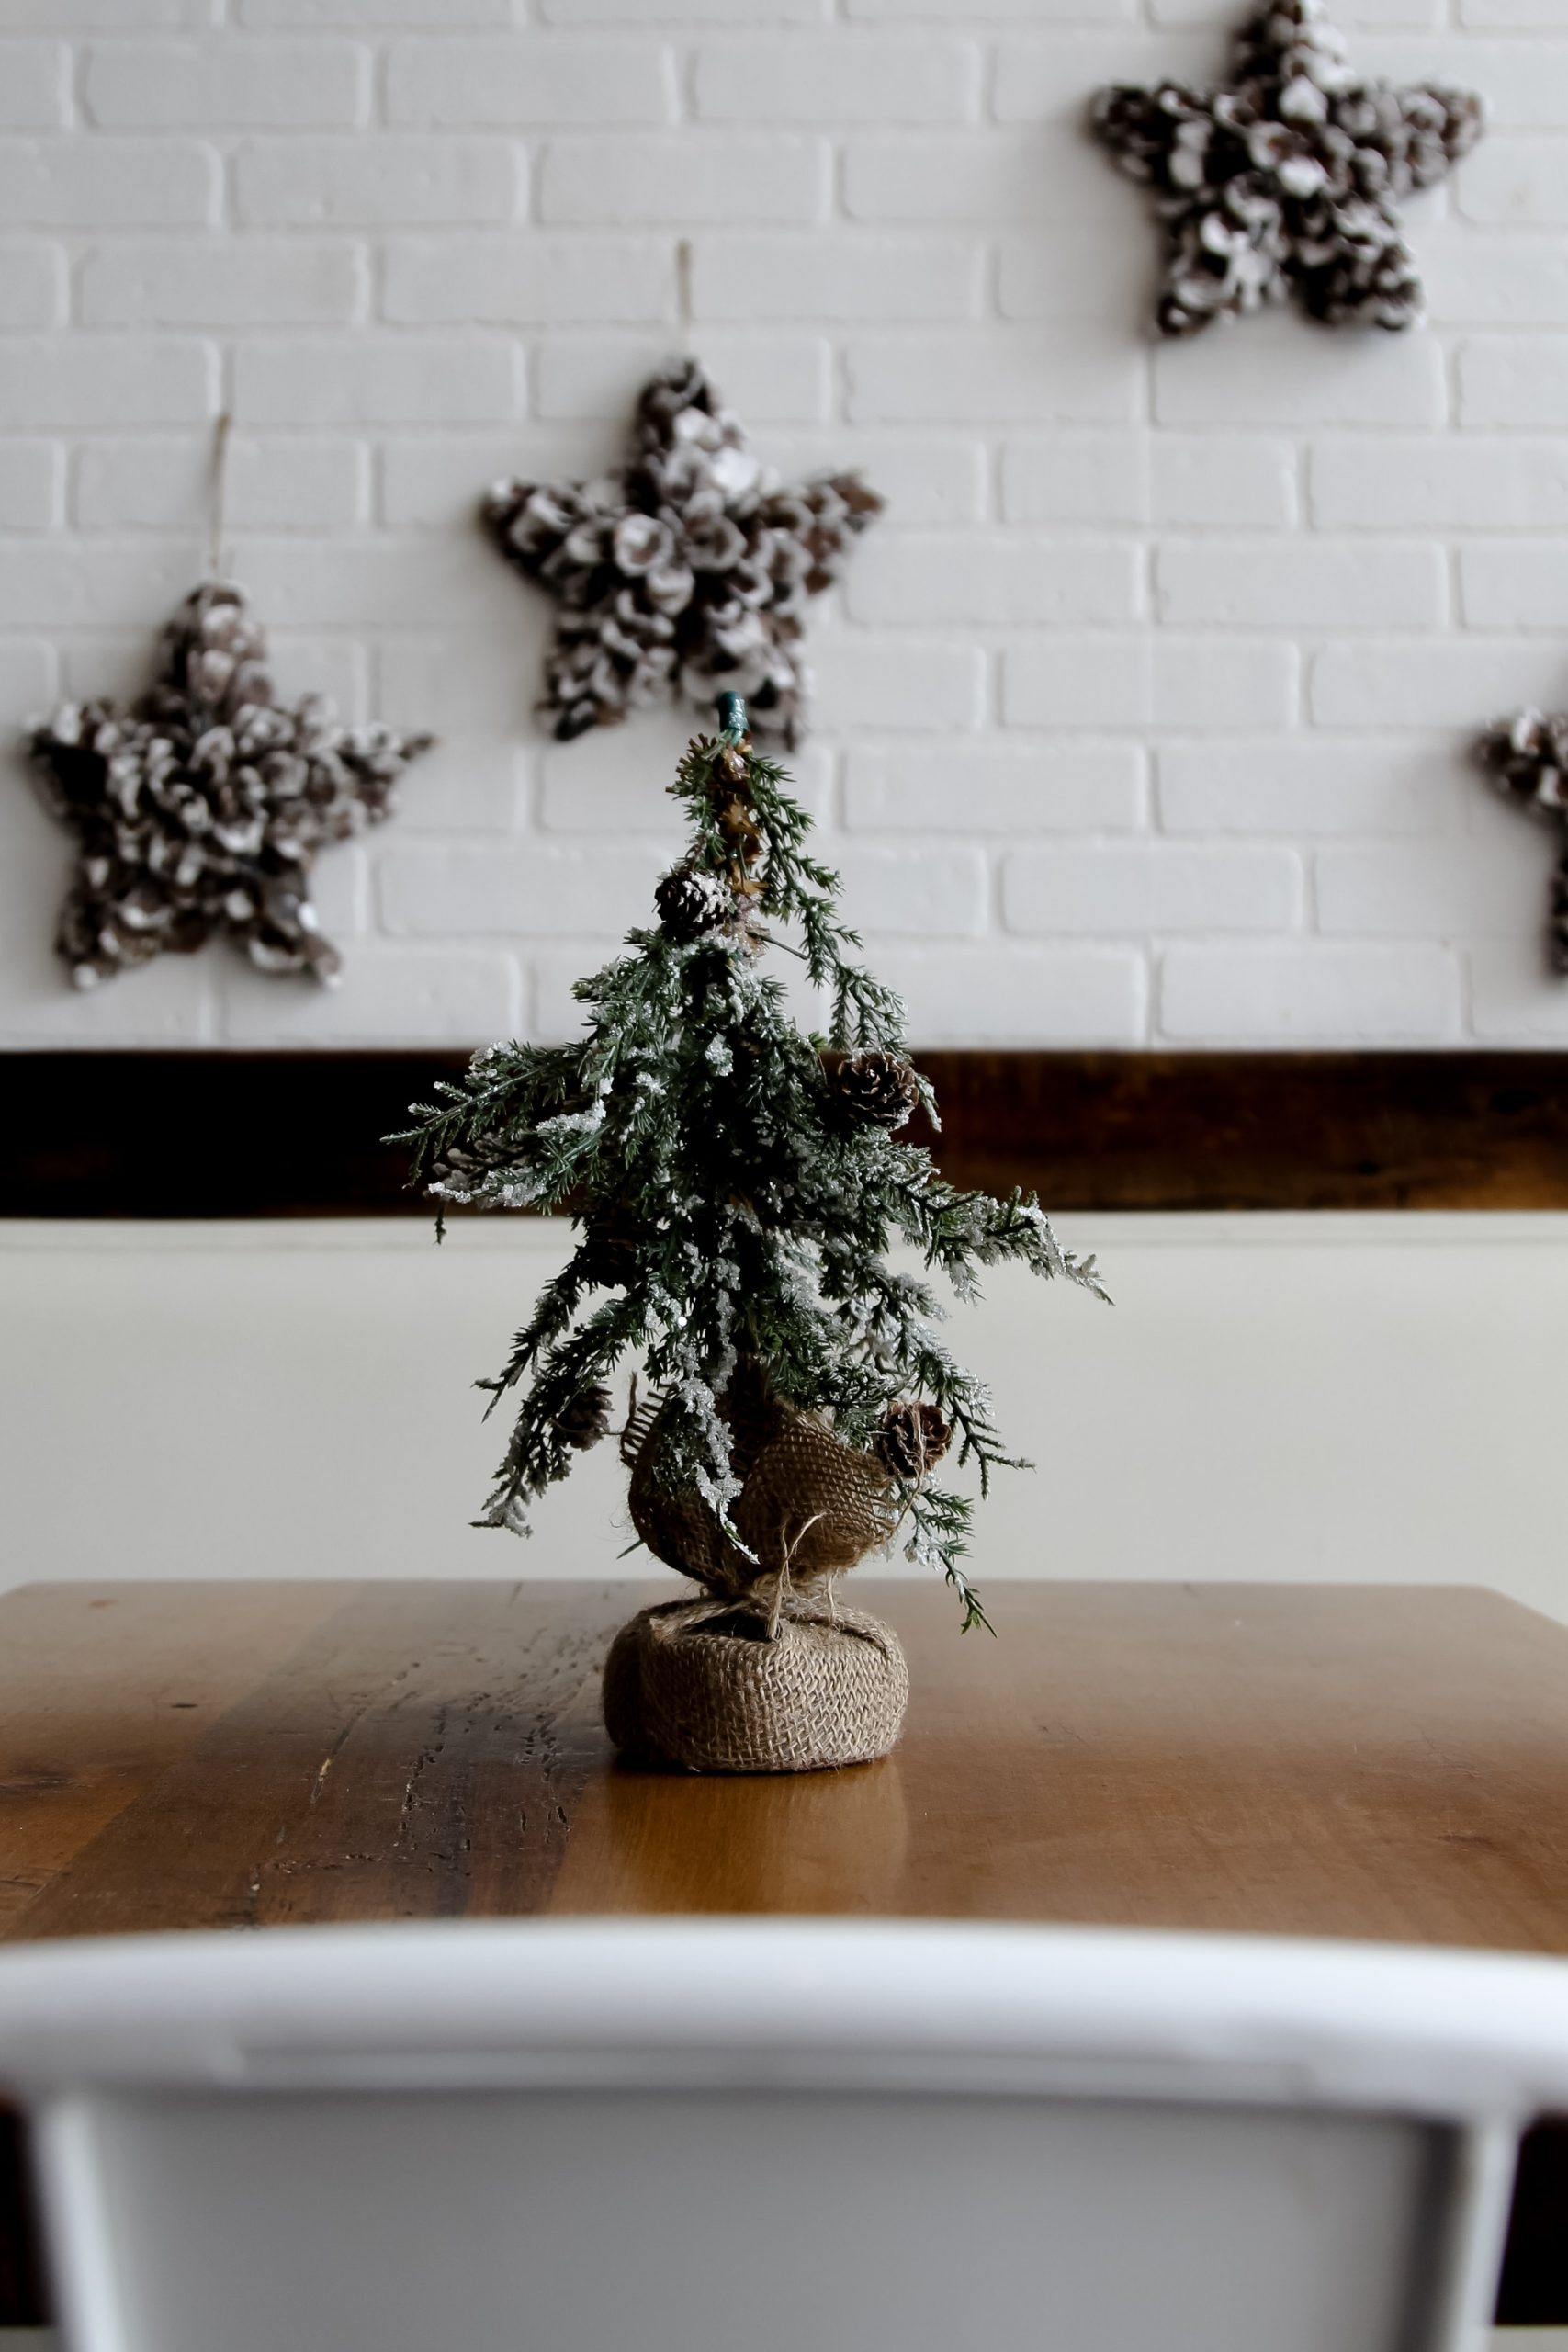 A handcrafted Christmas tree that's small in size, made using commonly found materials at home.